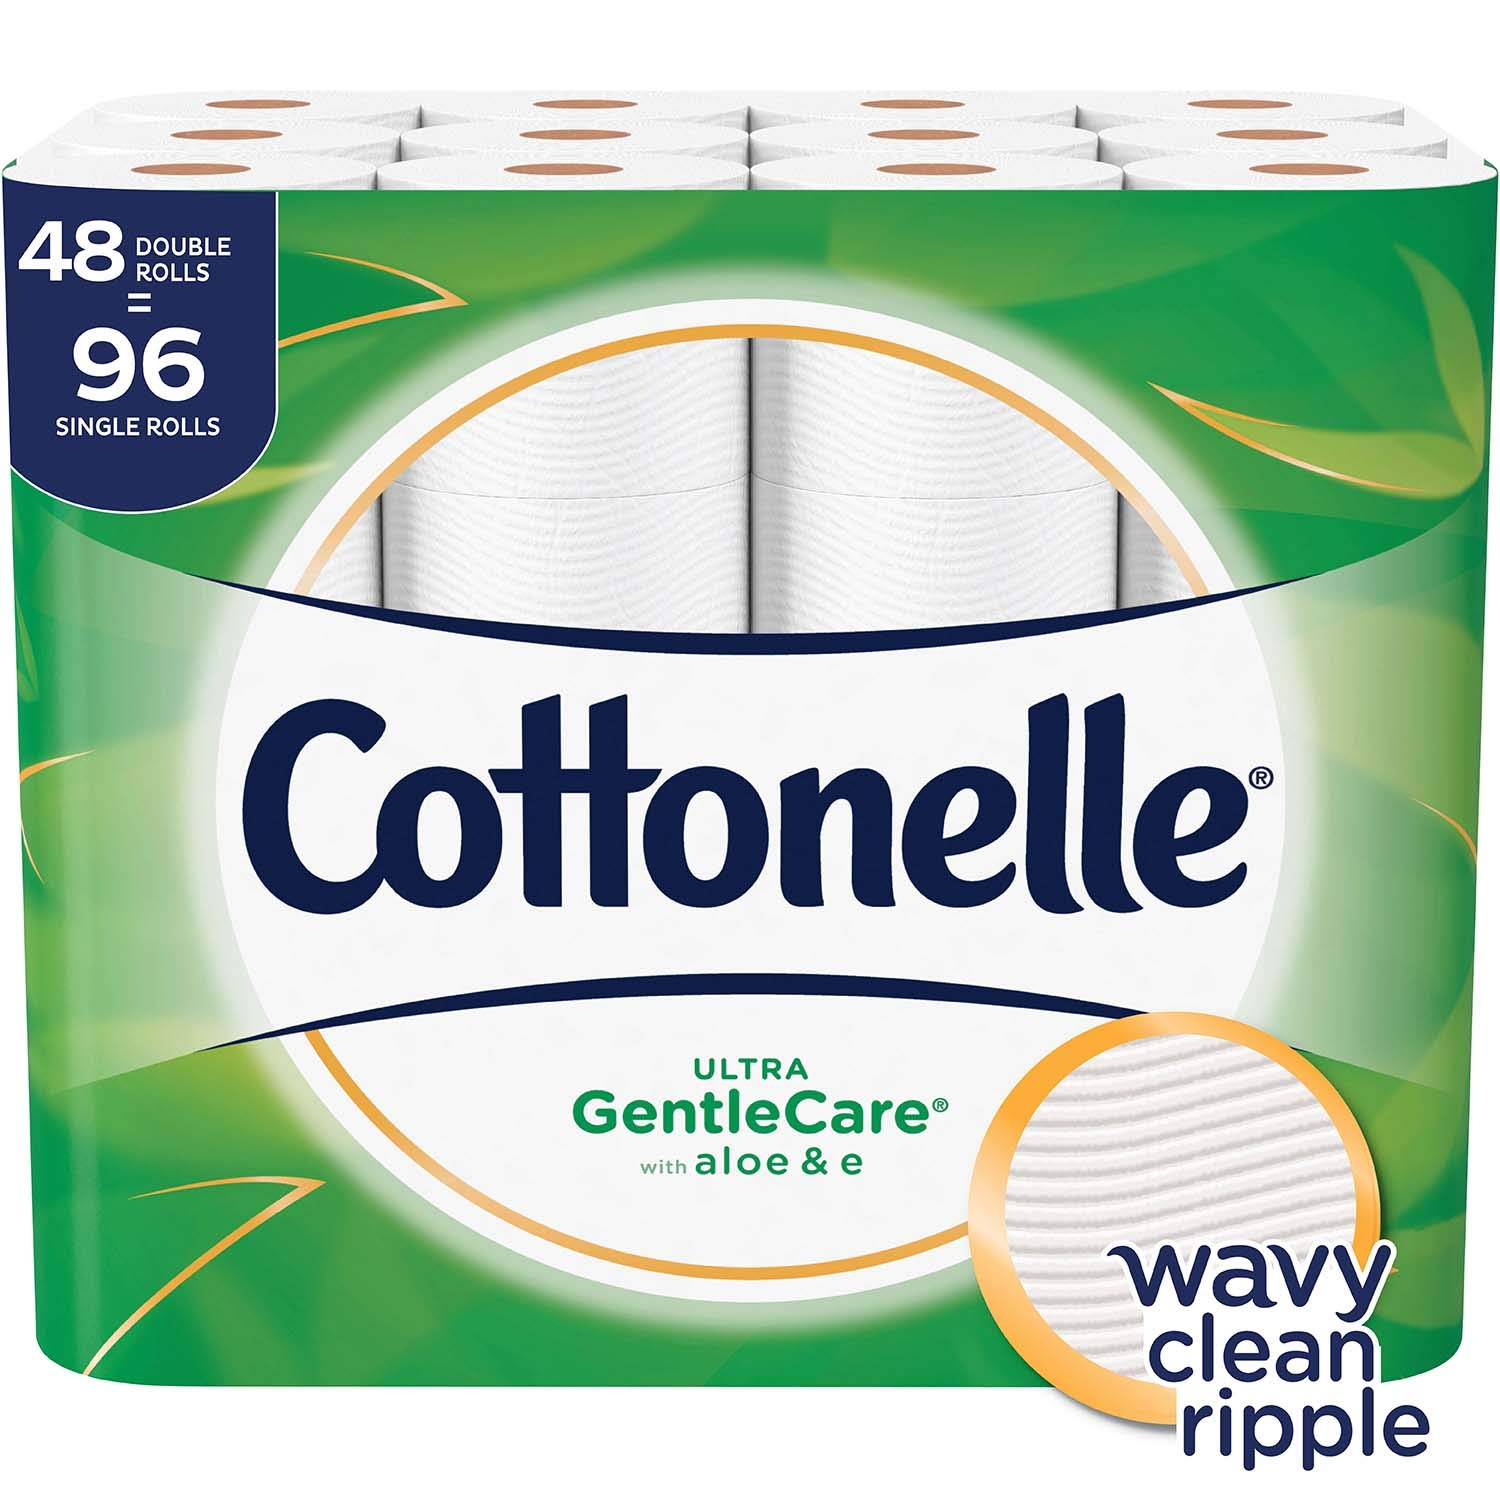 Cottonelle Ultra GentleCare Toilet Paper, 48 Double Rolls, Sensitive Bath Tissue with Aloe & Vitamin E by Cottonelle